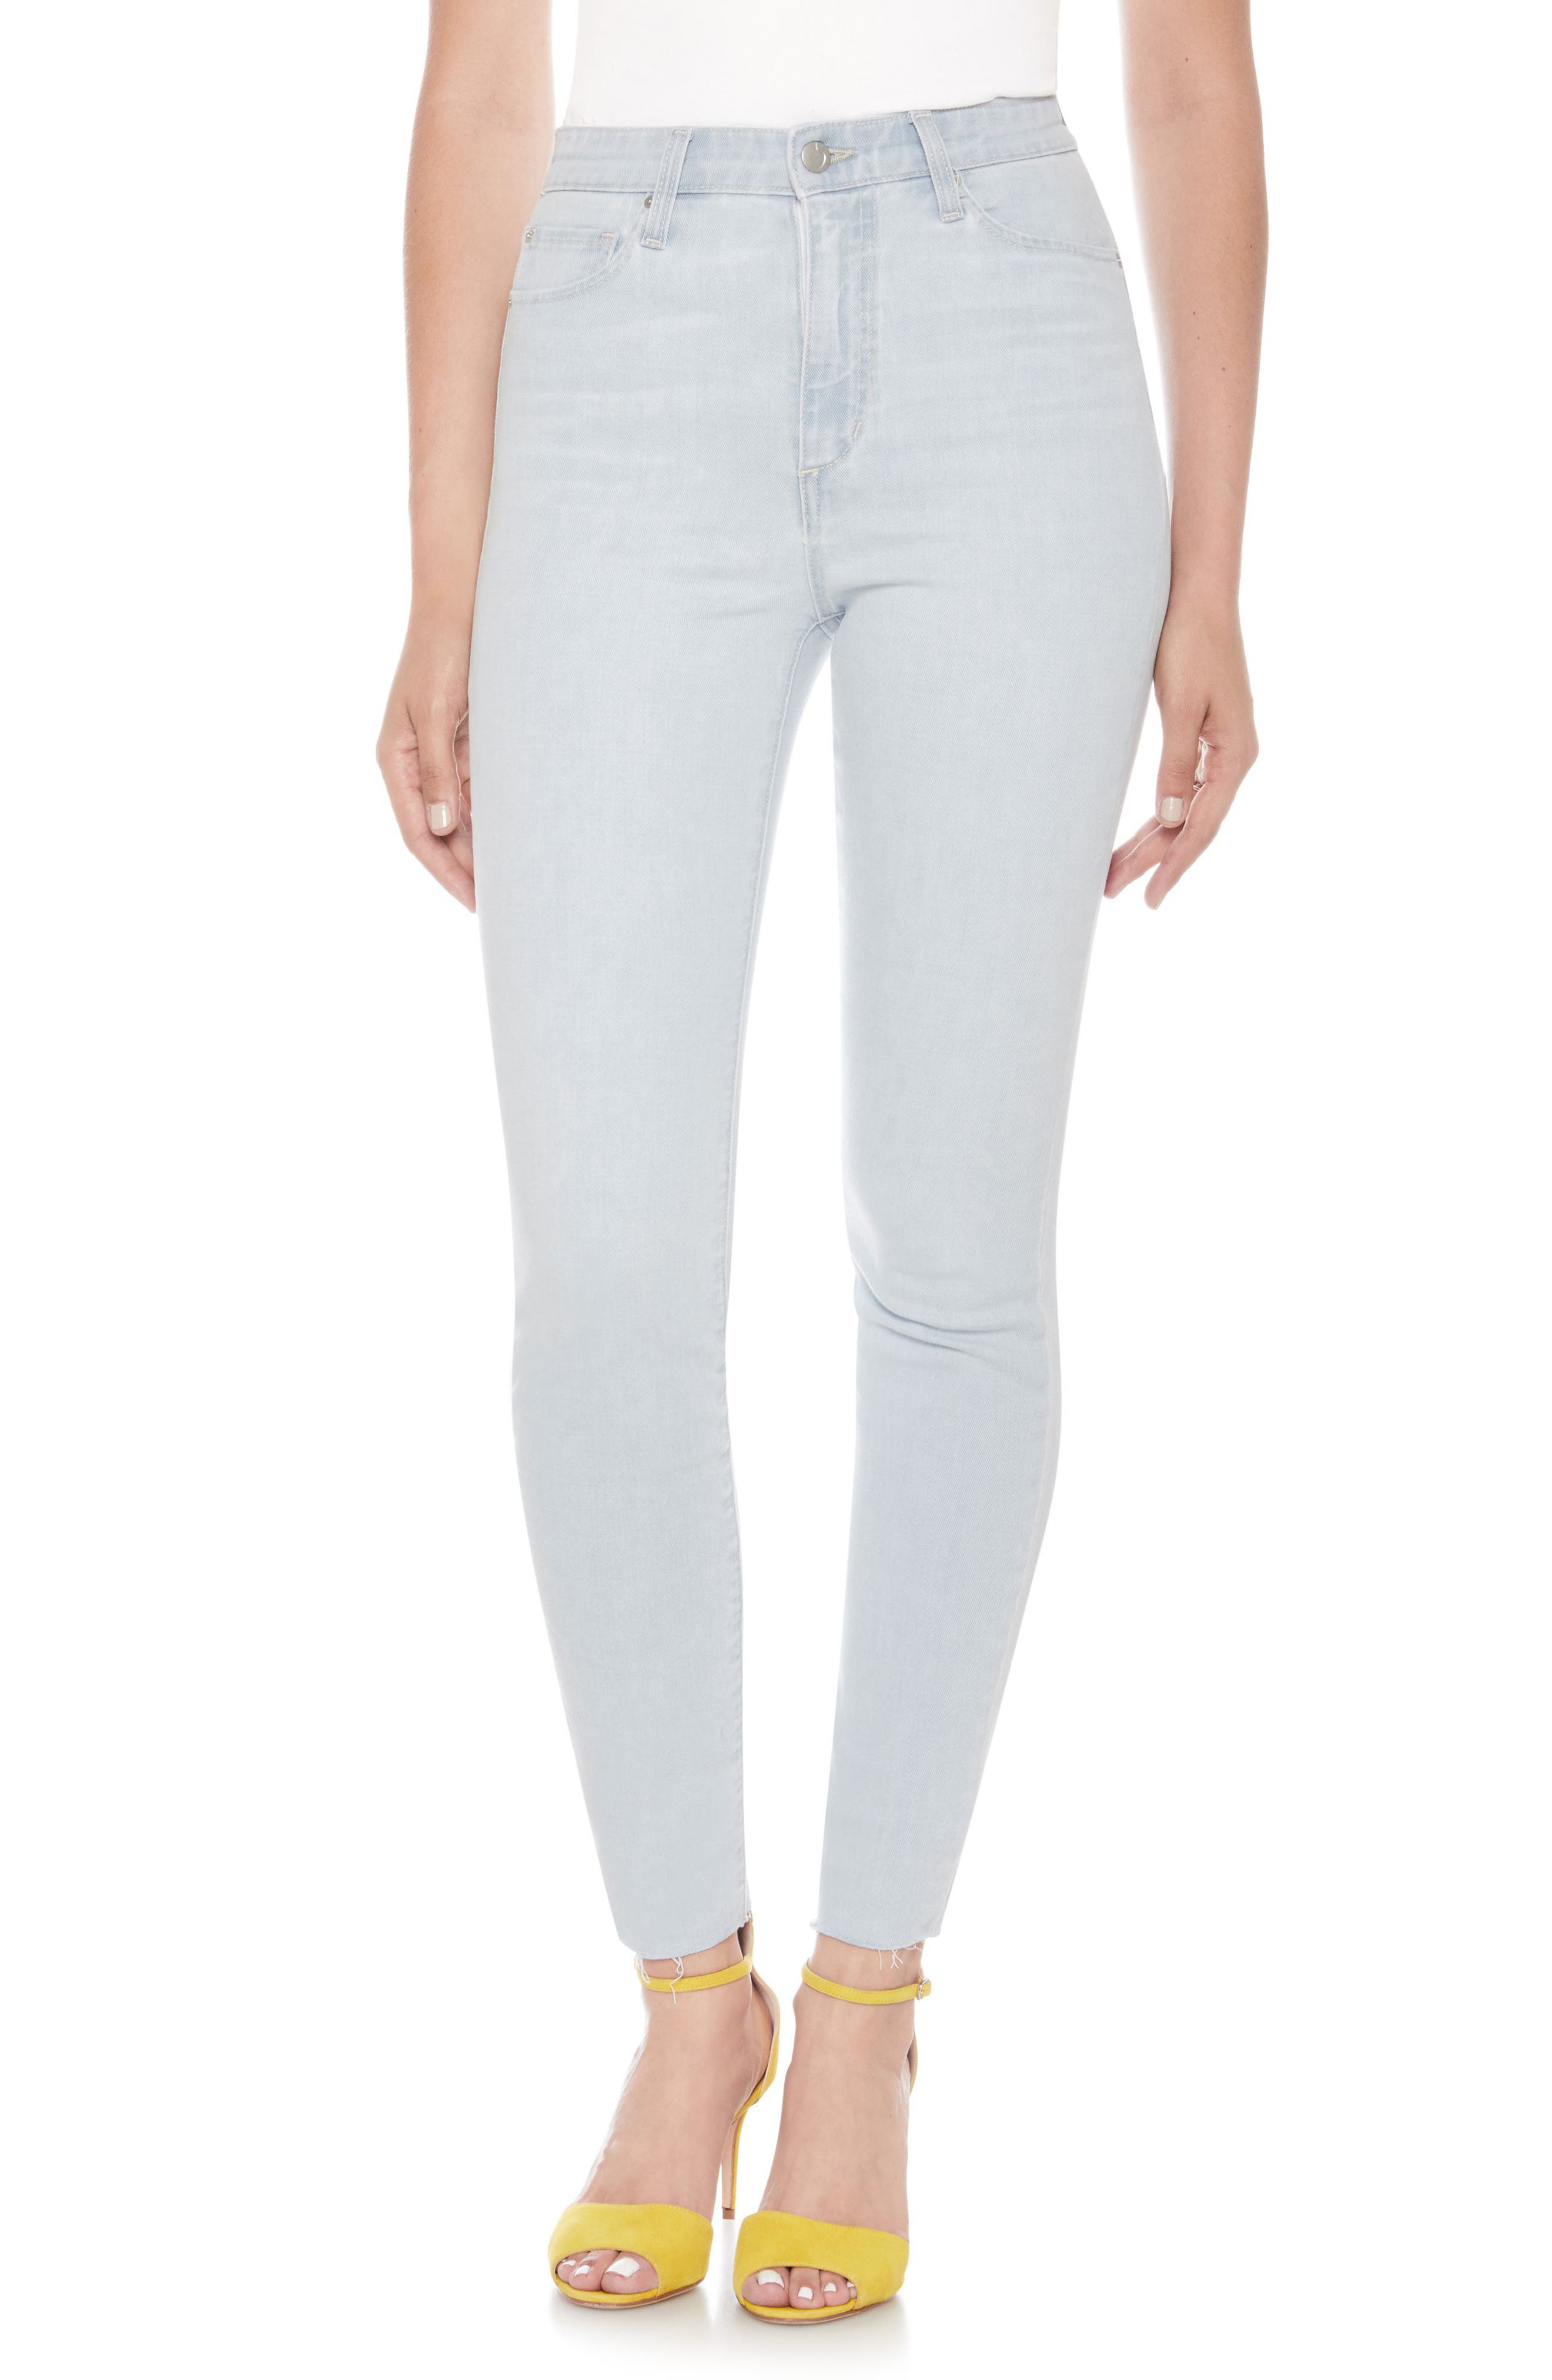 JOE'S The Bella Super High Waist Ankle Skinny Jeans, Main, color, 430